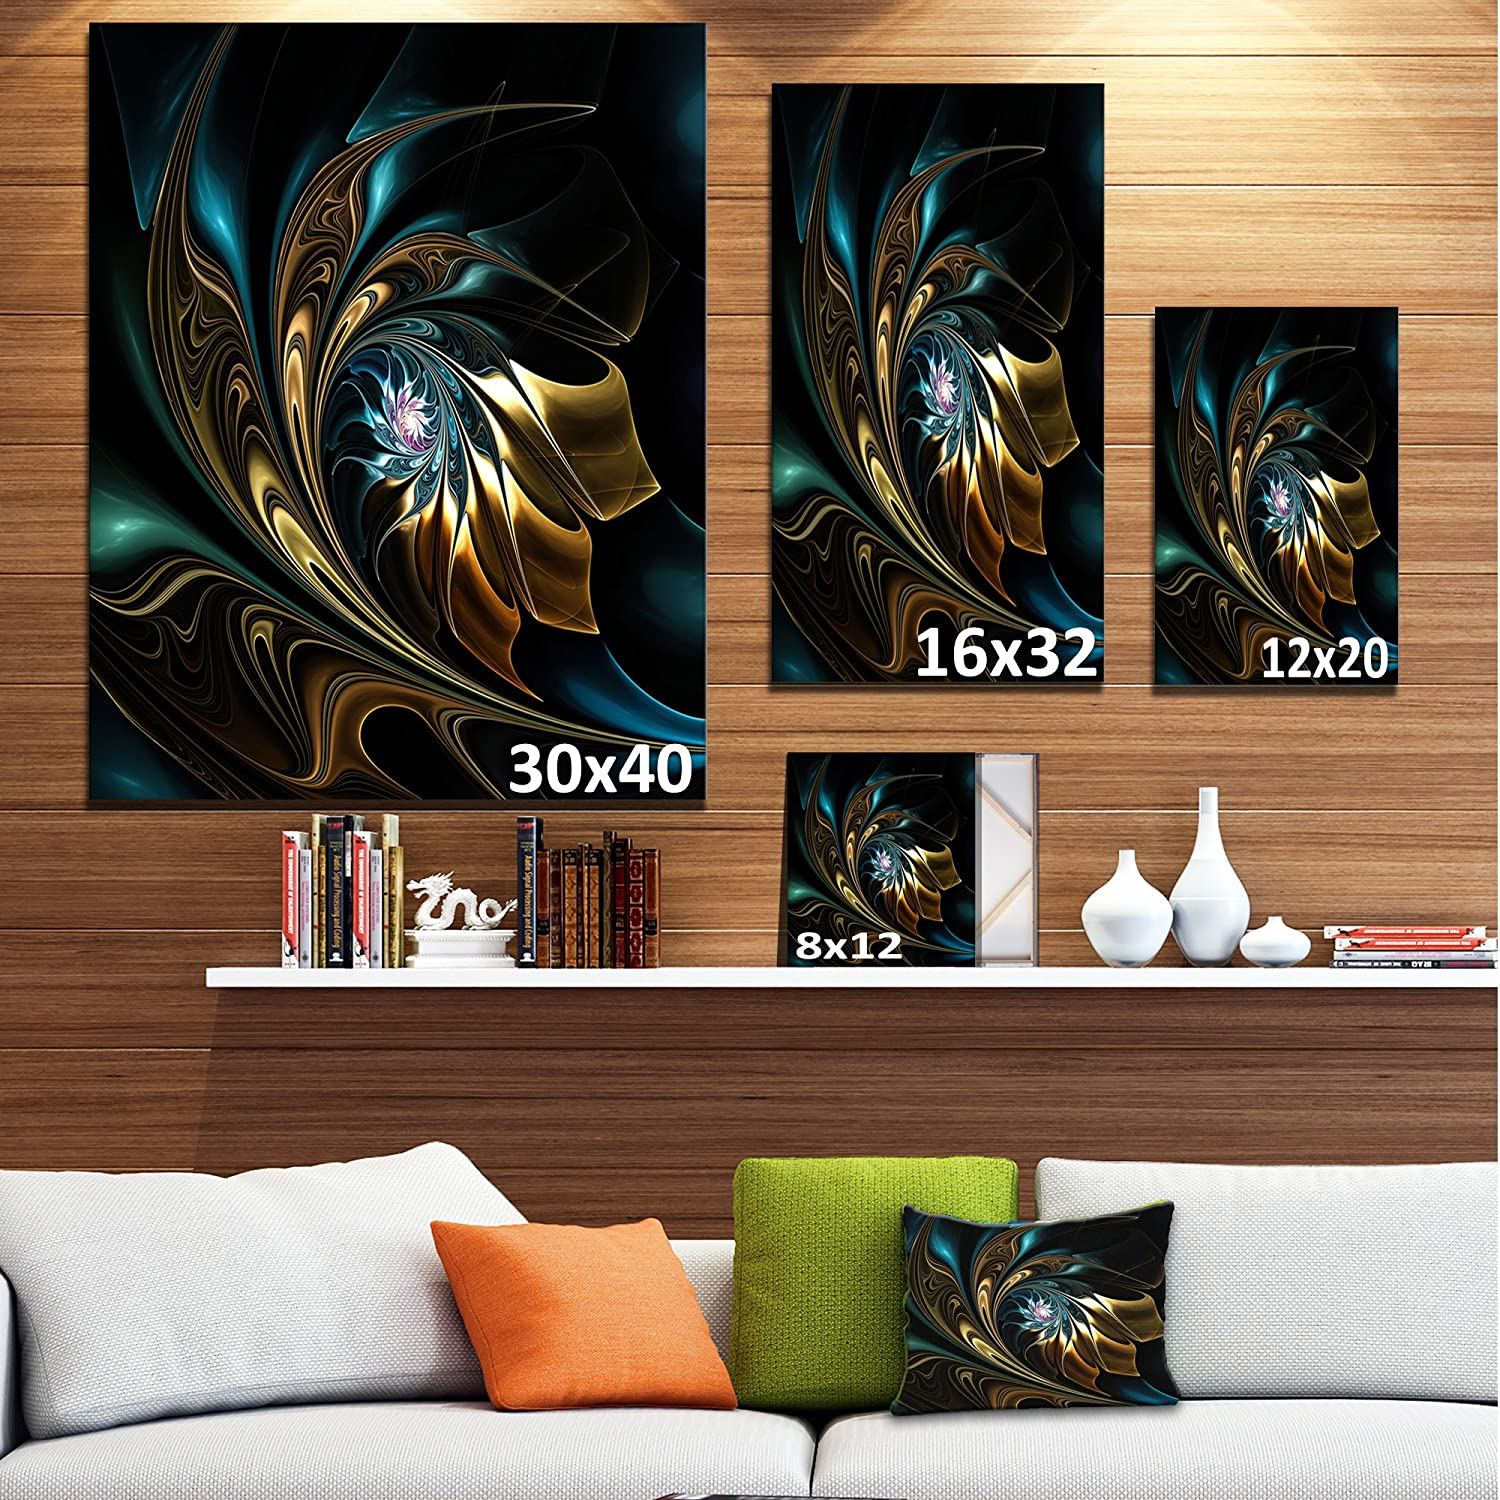 28 H/ x/ 36 W/ x/ 1 D 3P Blue Designart Brown Fractal Flower in Black-Oversized Abstract Canvas Art-28X36 3 Piece